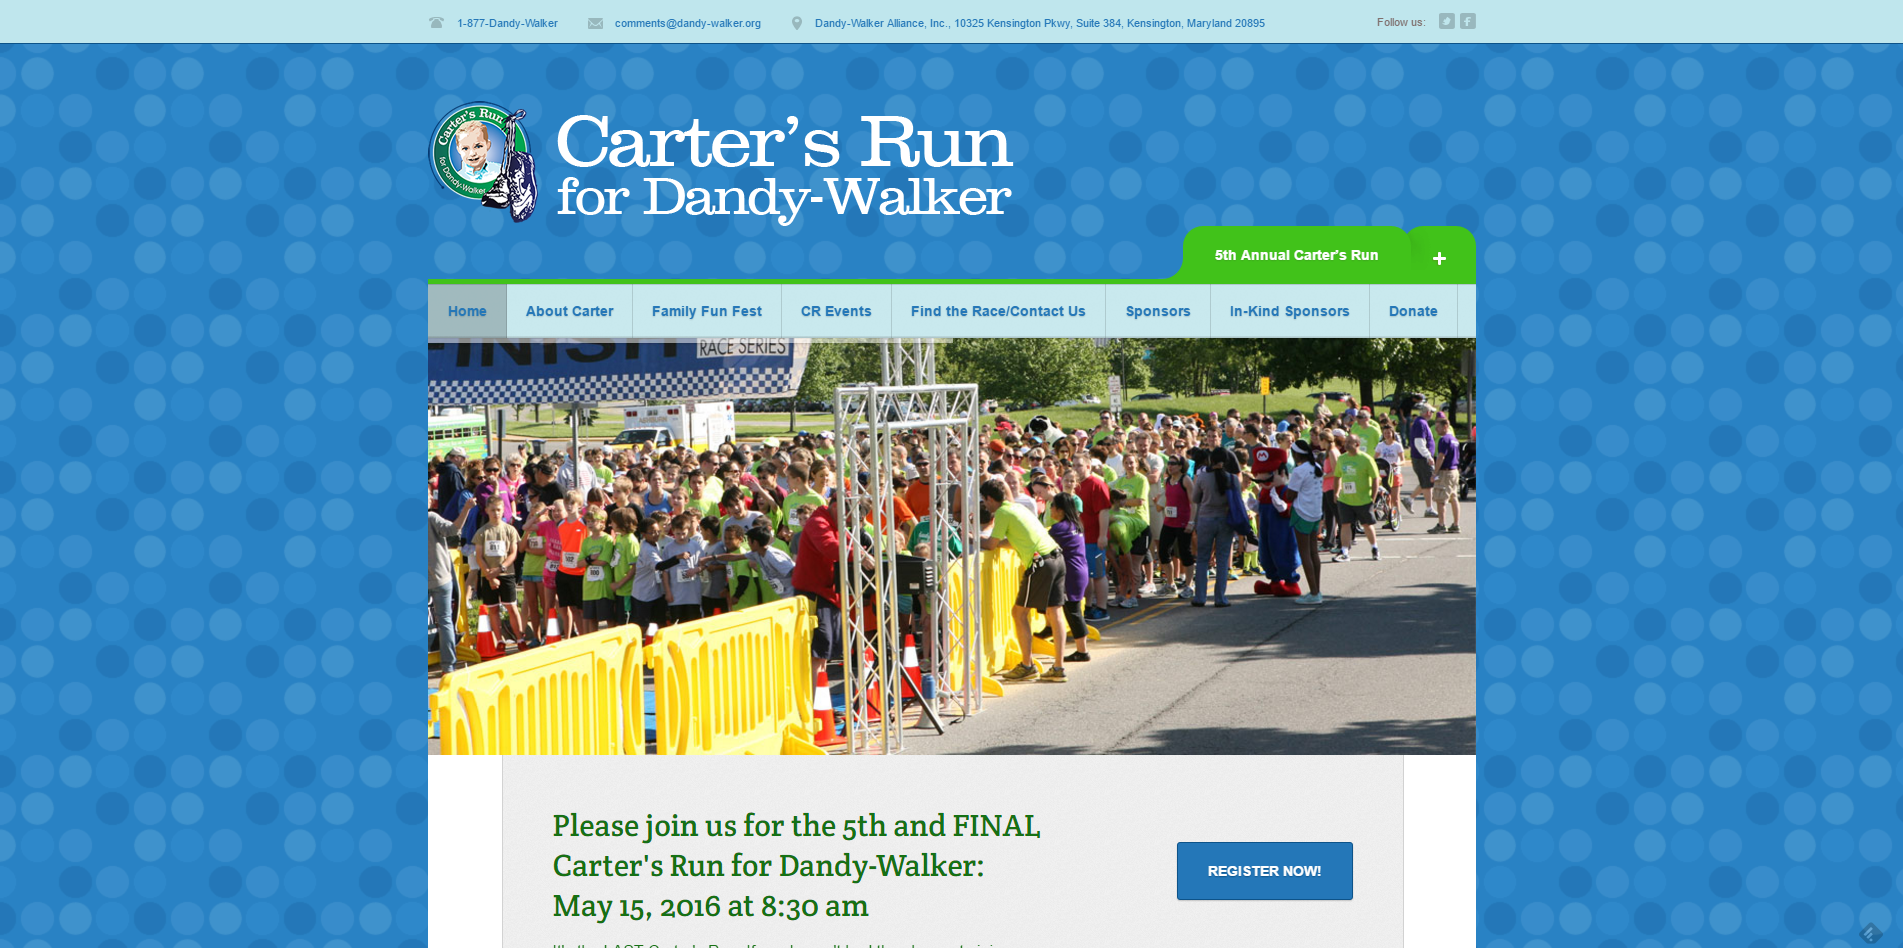 Carter's Run for Dandy Walker